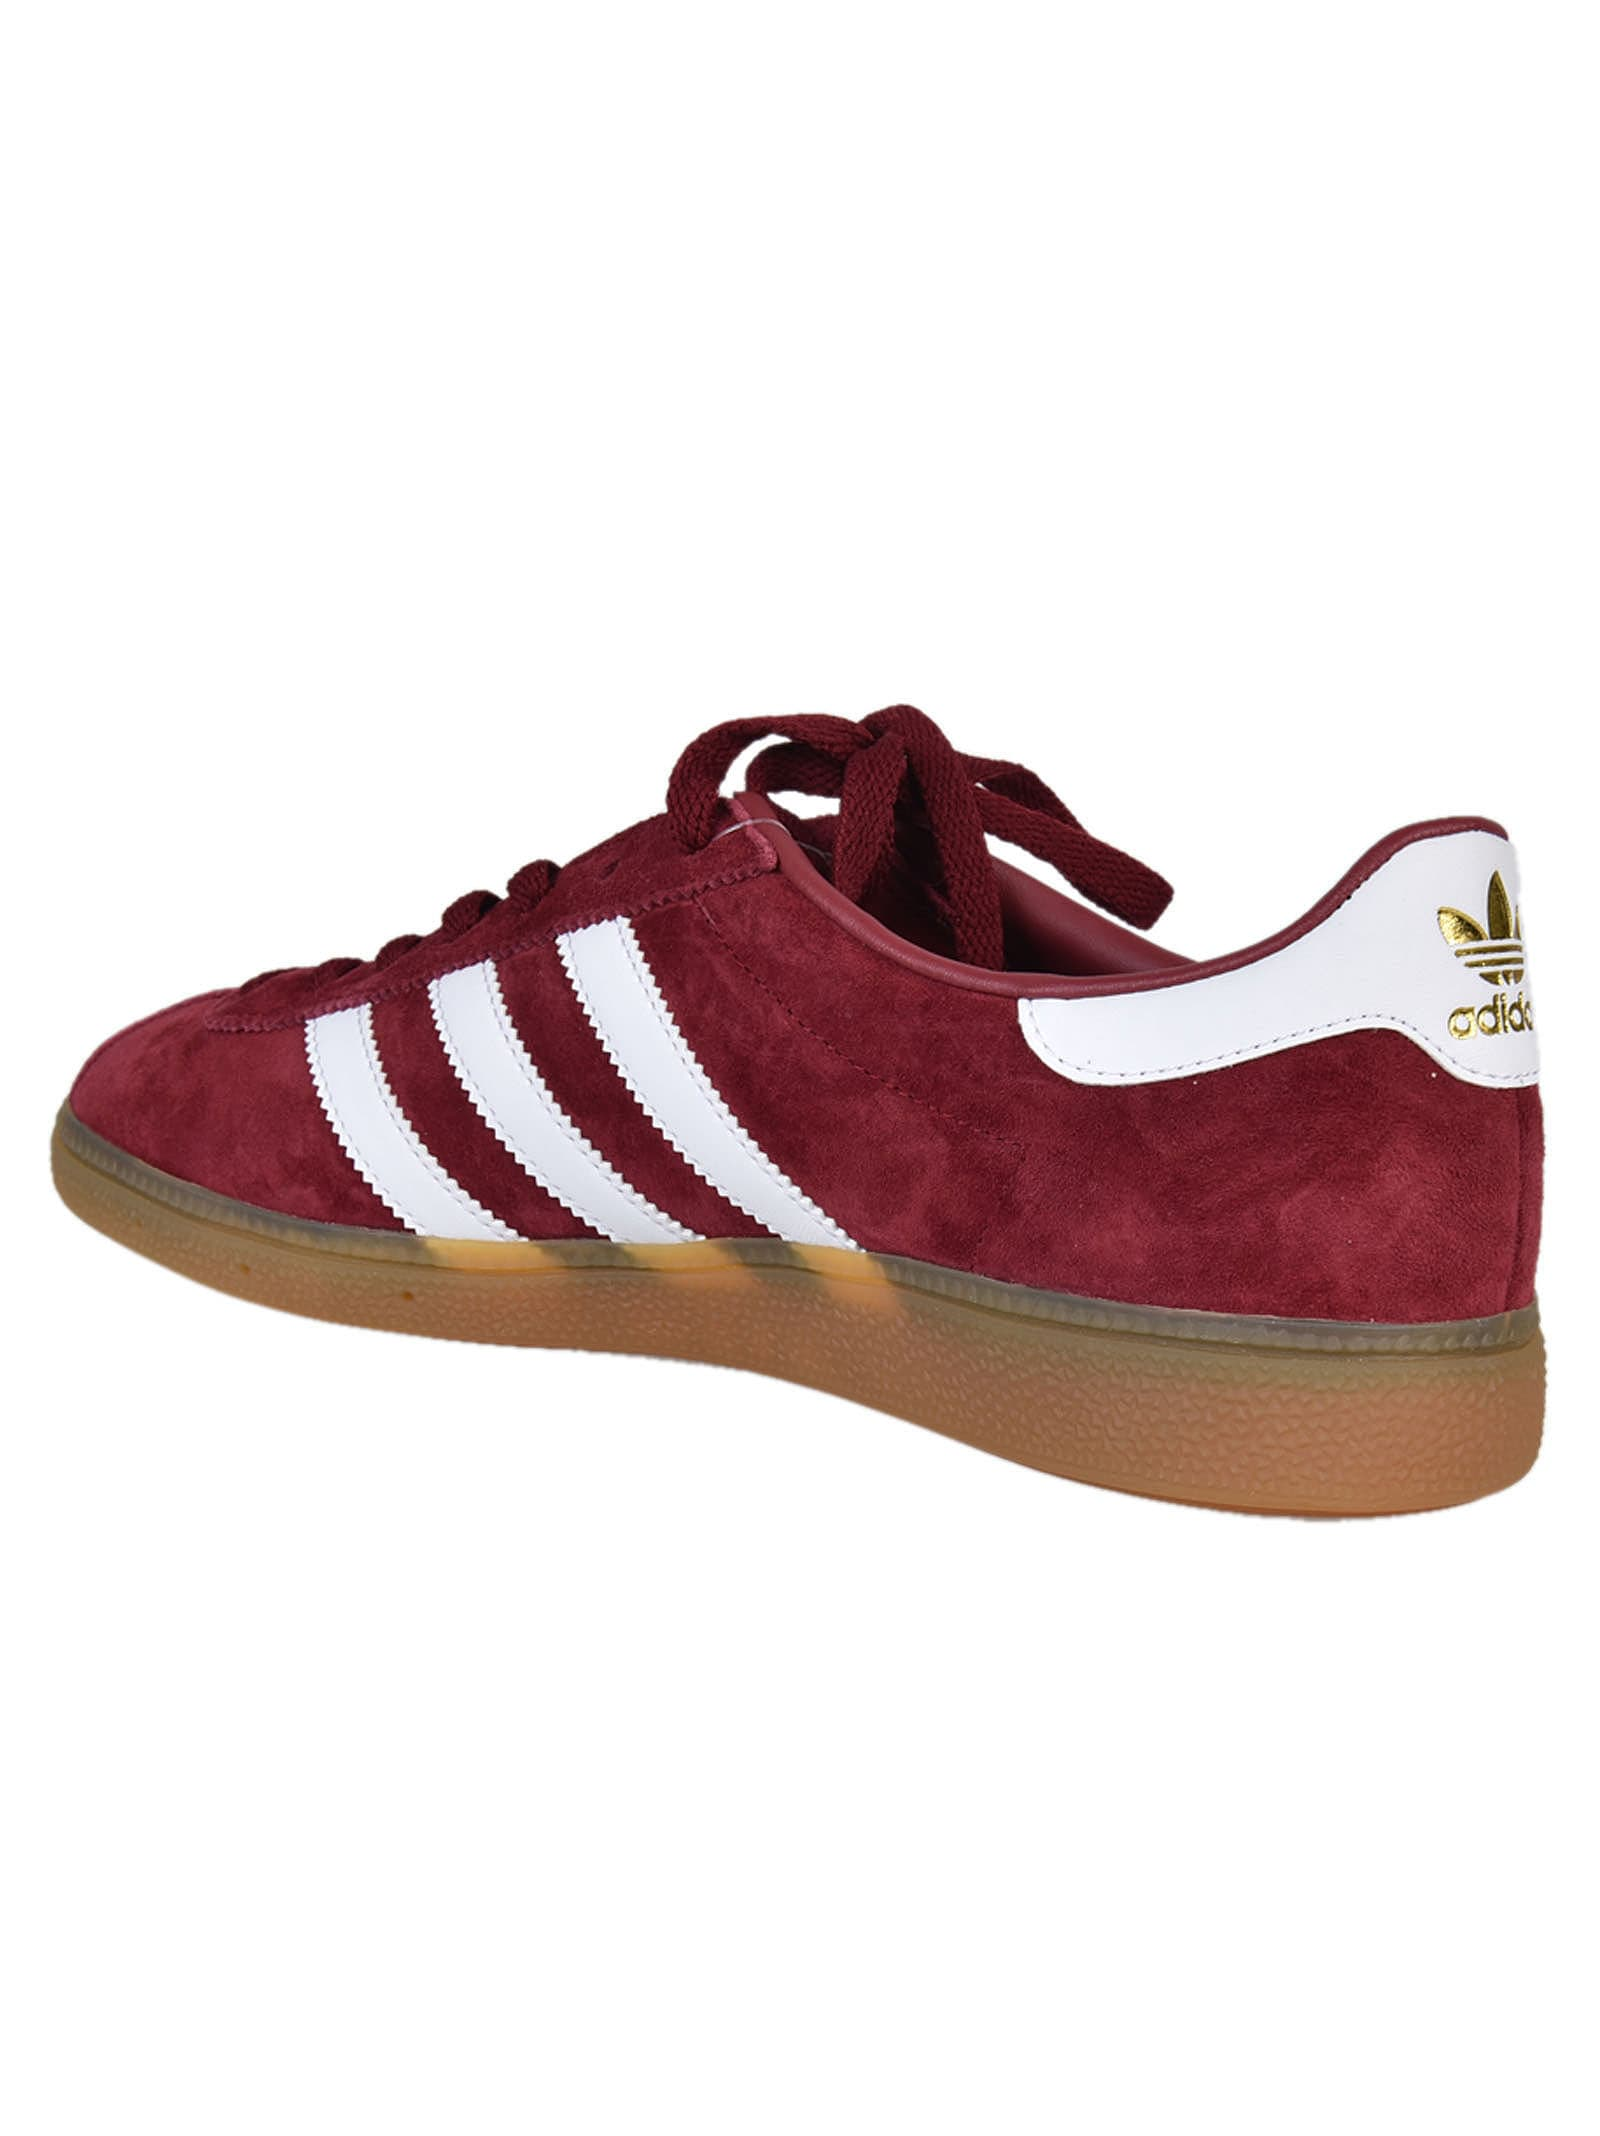 adidas munchen shoes Off 63% s4ssecurity.in